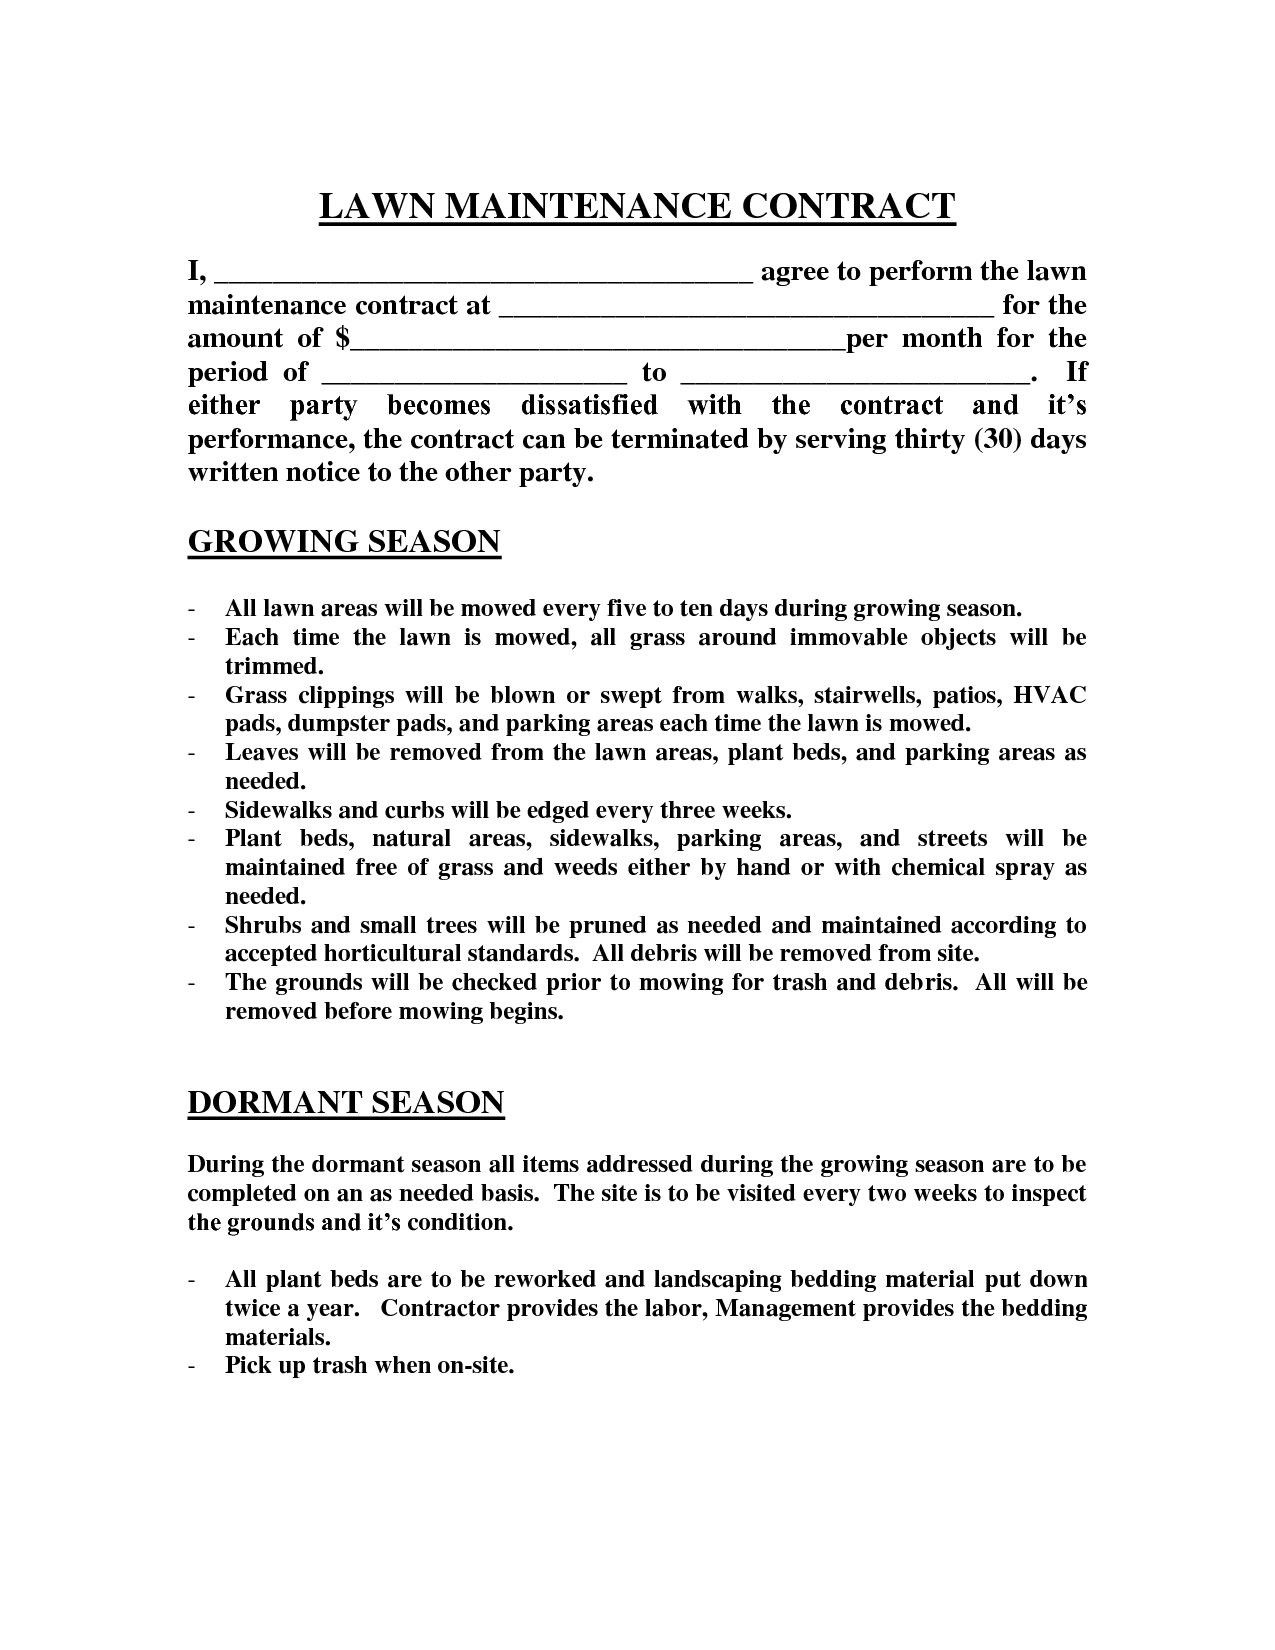 Lawn Maintenance Contract Images Lawn Maintenance Contract - Lawn care contract template